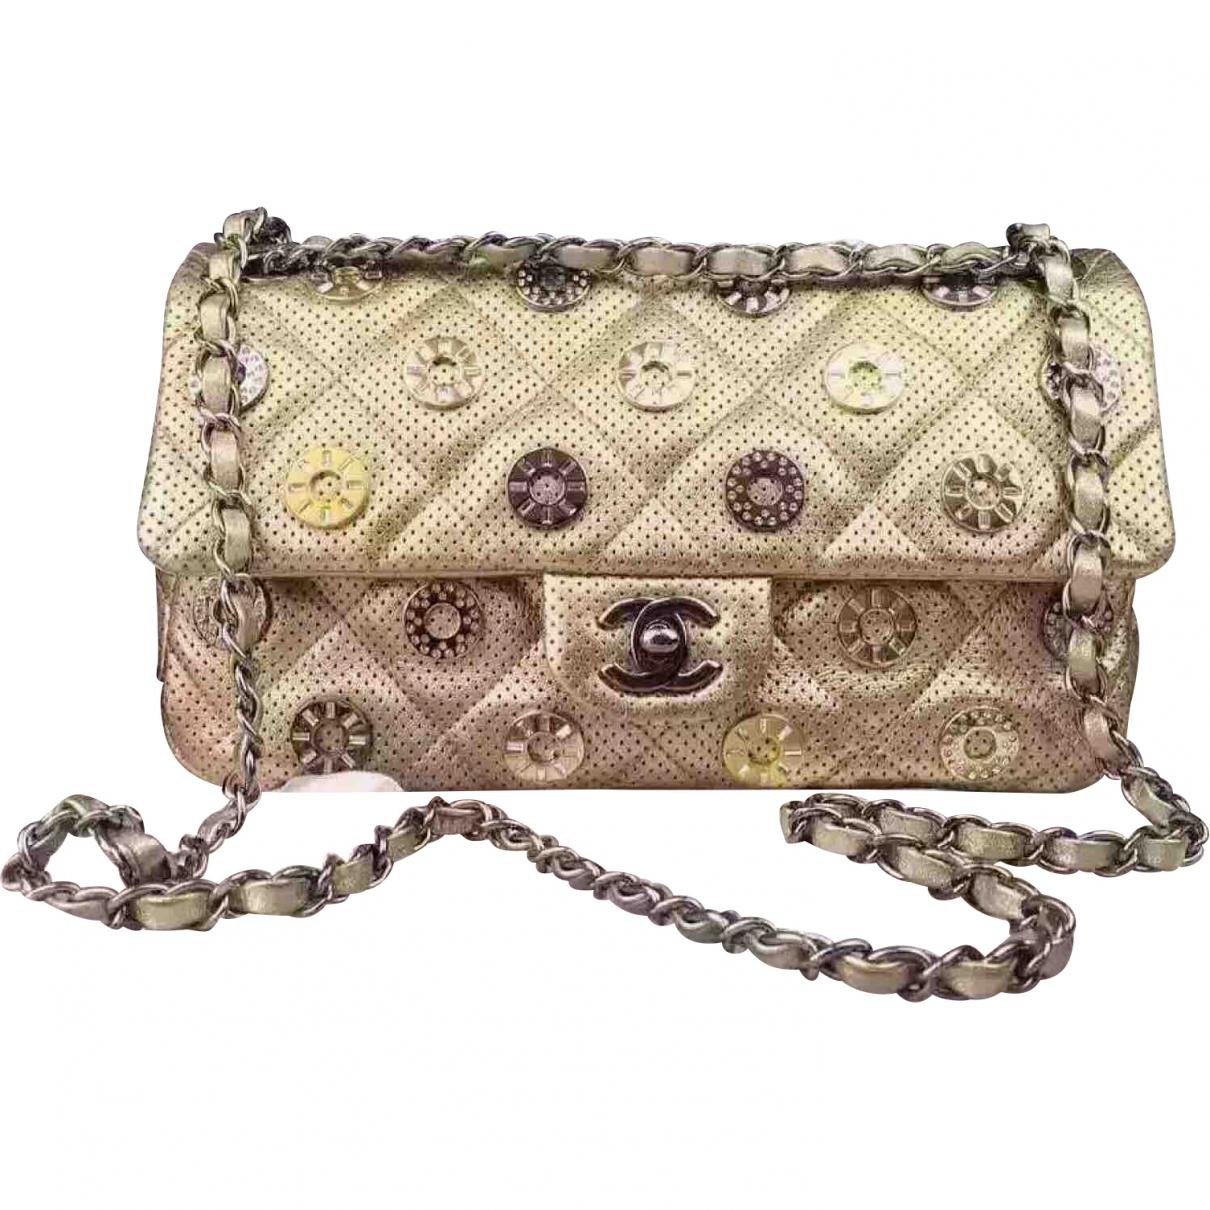 bcfc35eda5bf Lyst - Chanel Pre-owned Timeless Leather Crossbody Bag in Metallic